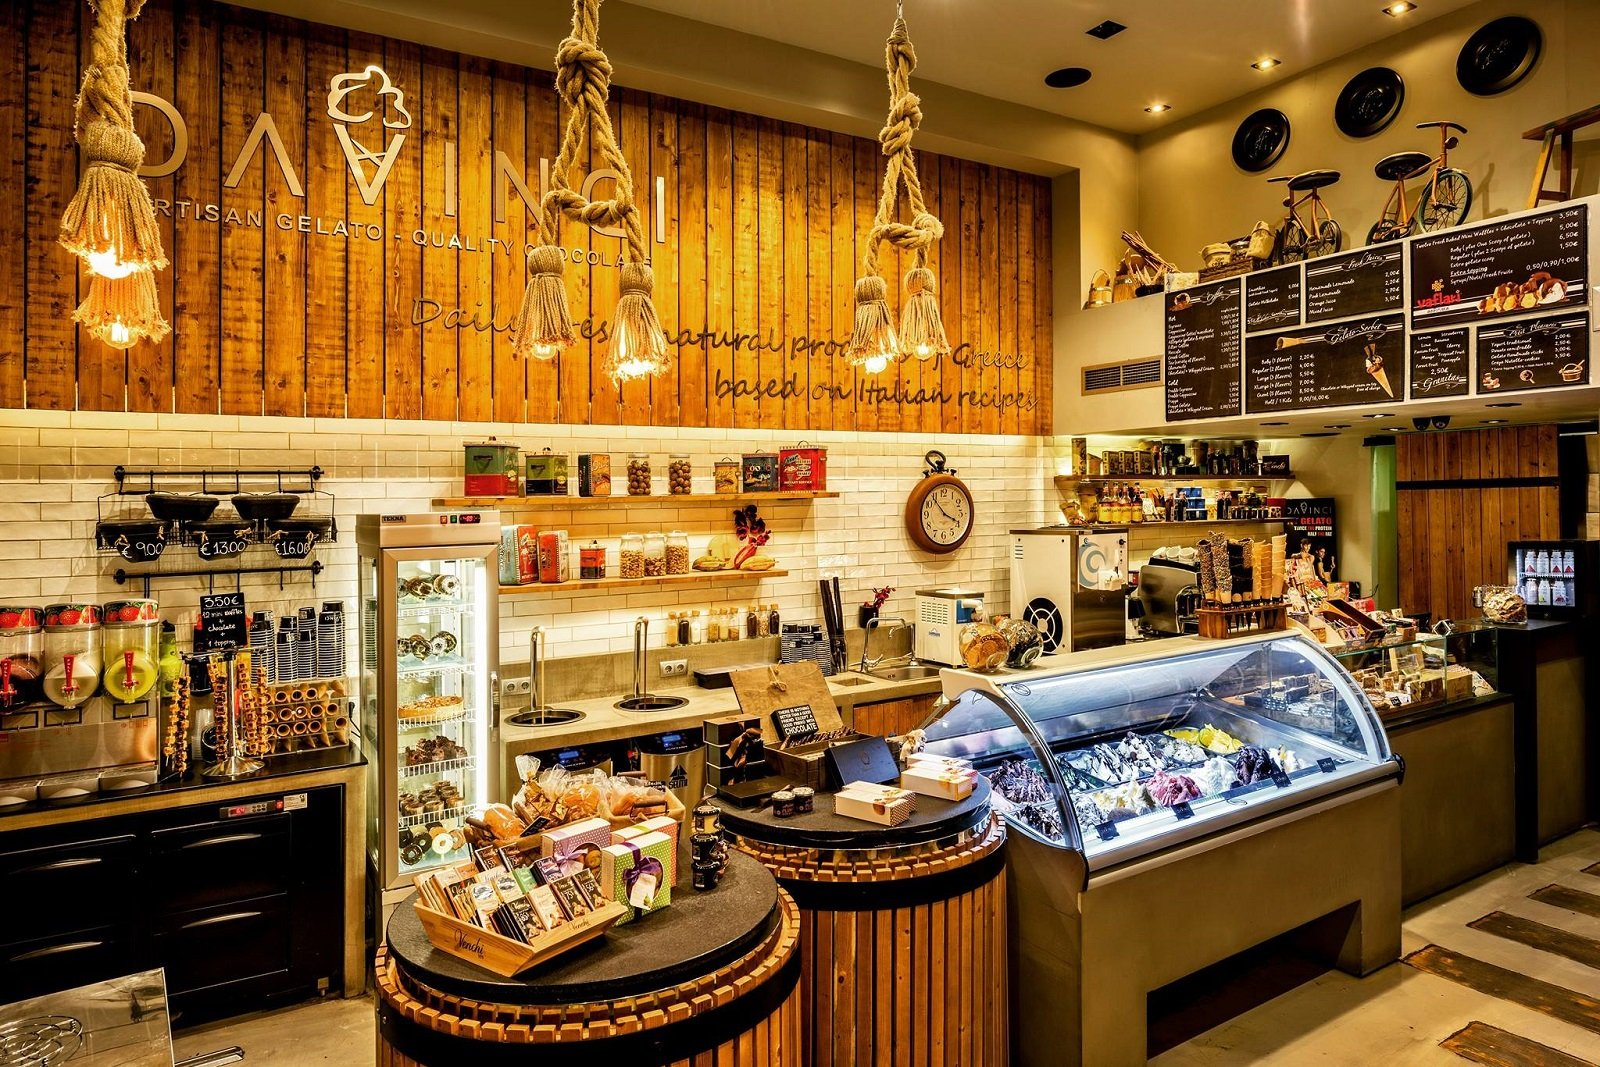 The interior of Da Vinci gelato, designed with attention to detail.